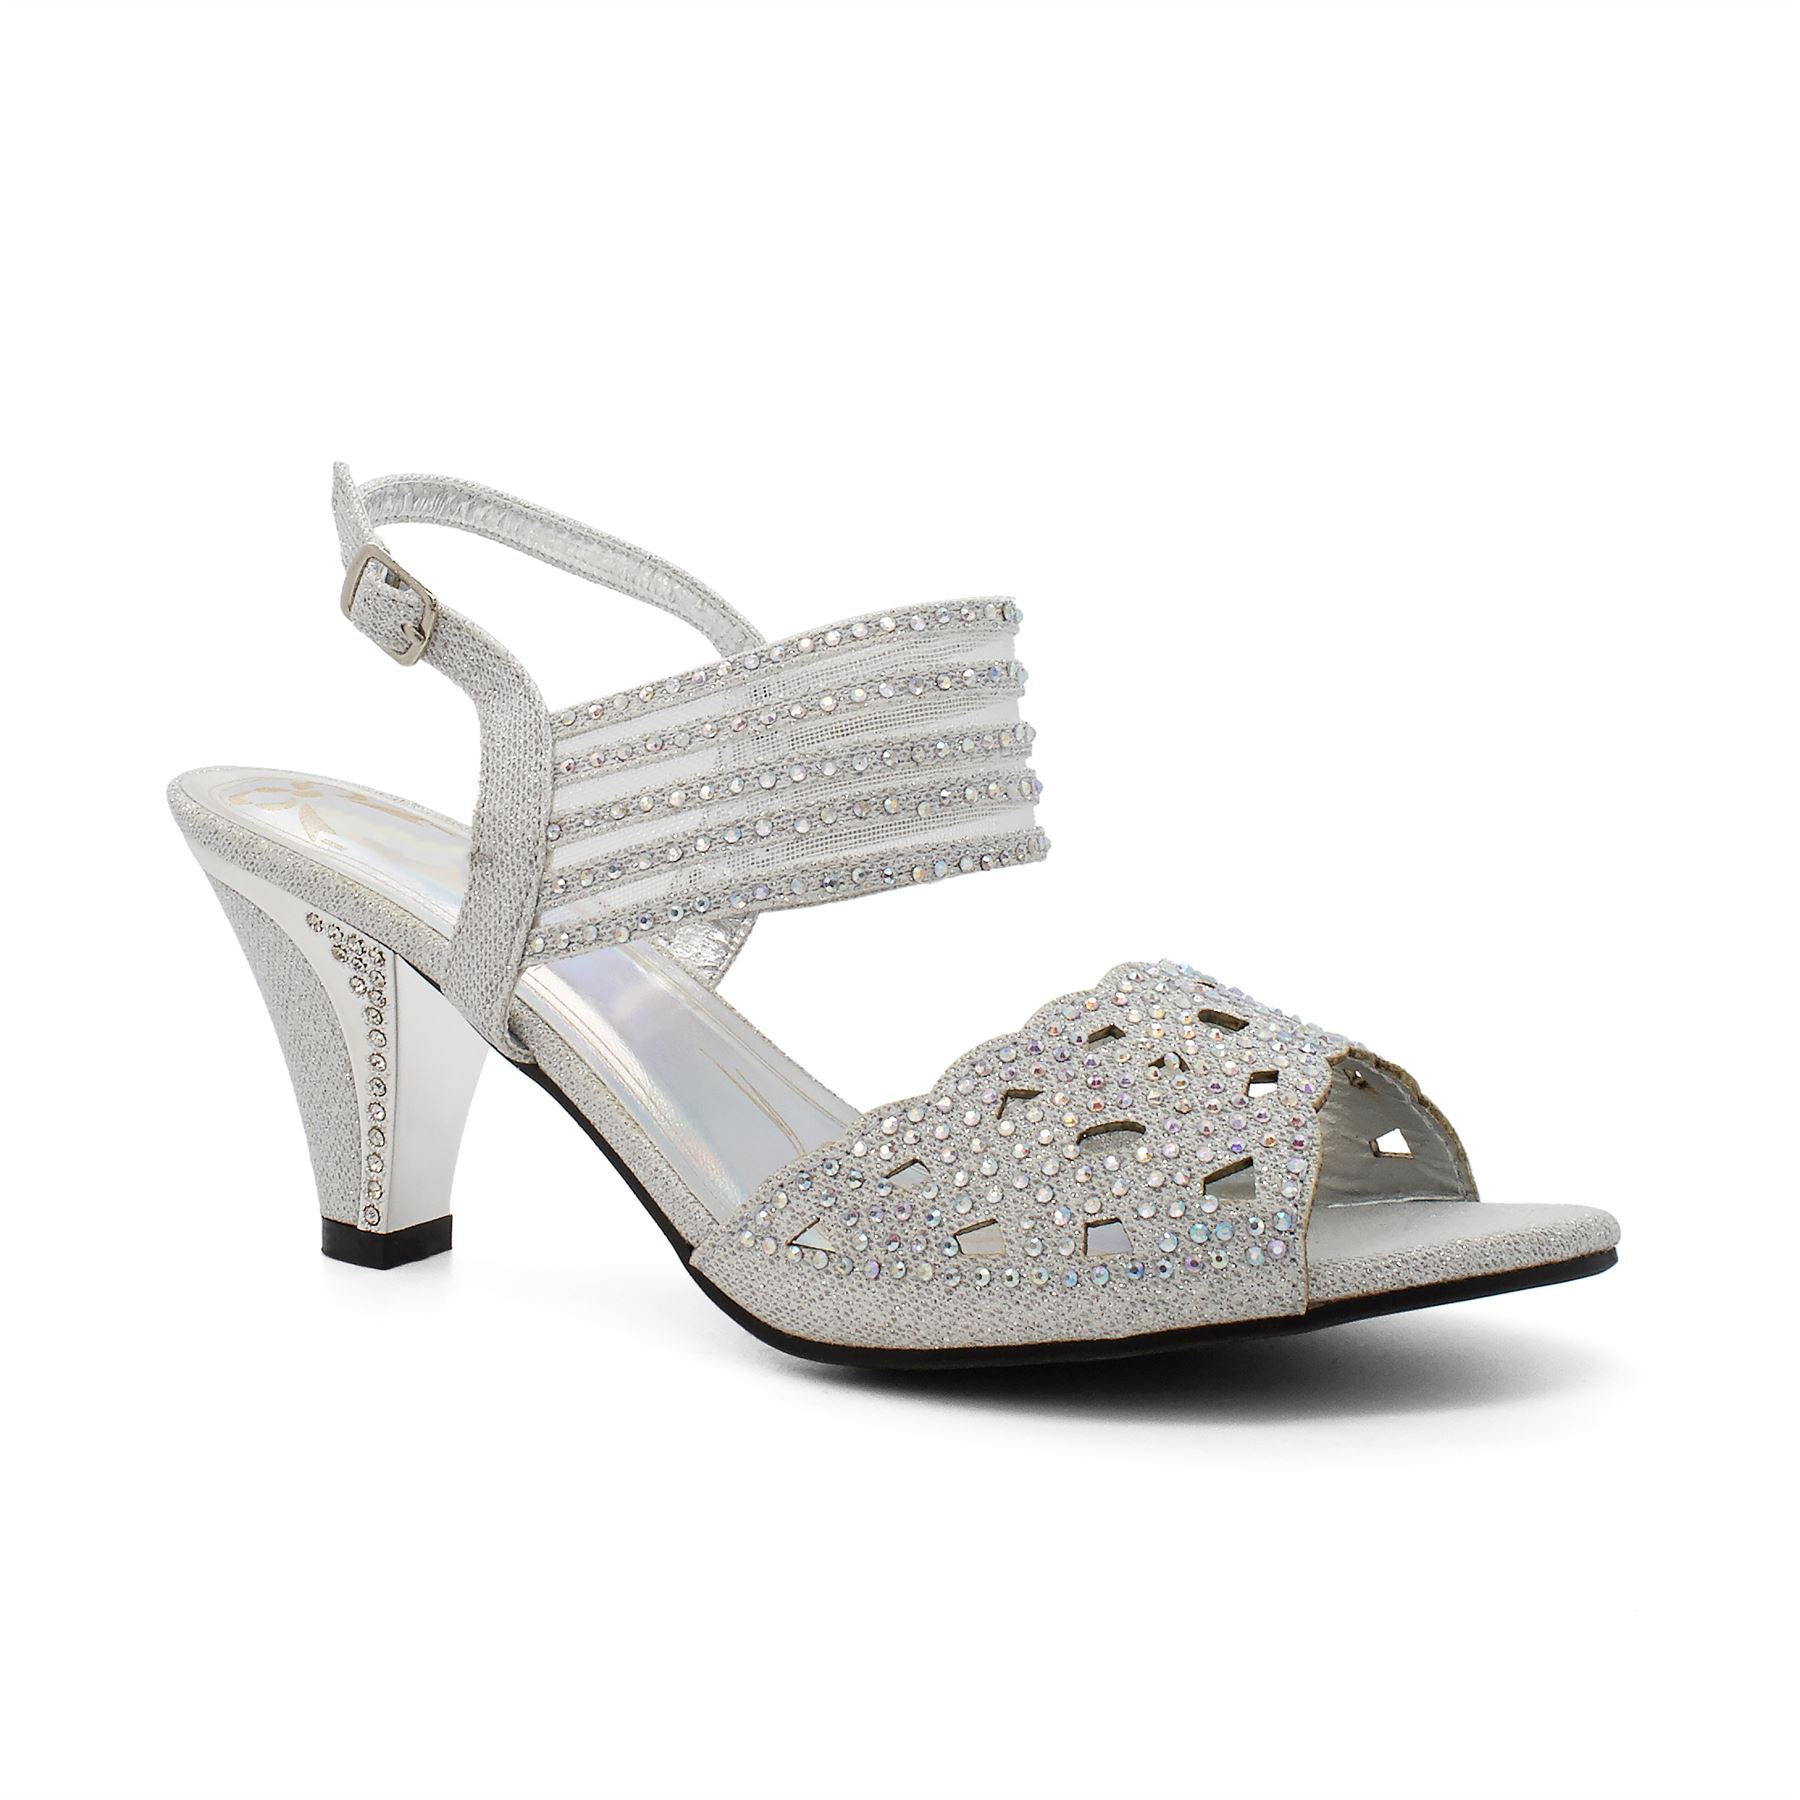 696593343b5 Ladies Diamante Low Mid Heel Wedding Sandals Womens Strappy Party Bridal  Evening UK 7 Silver. About this product. Picture 1 of 5  Picture 2 of 5 ...